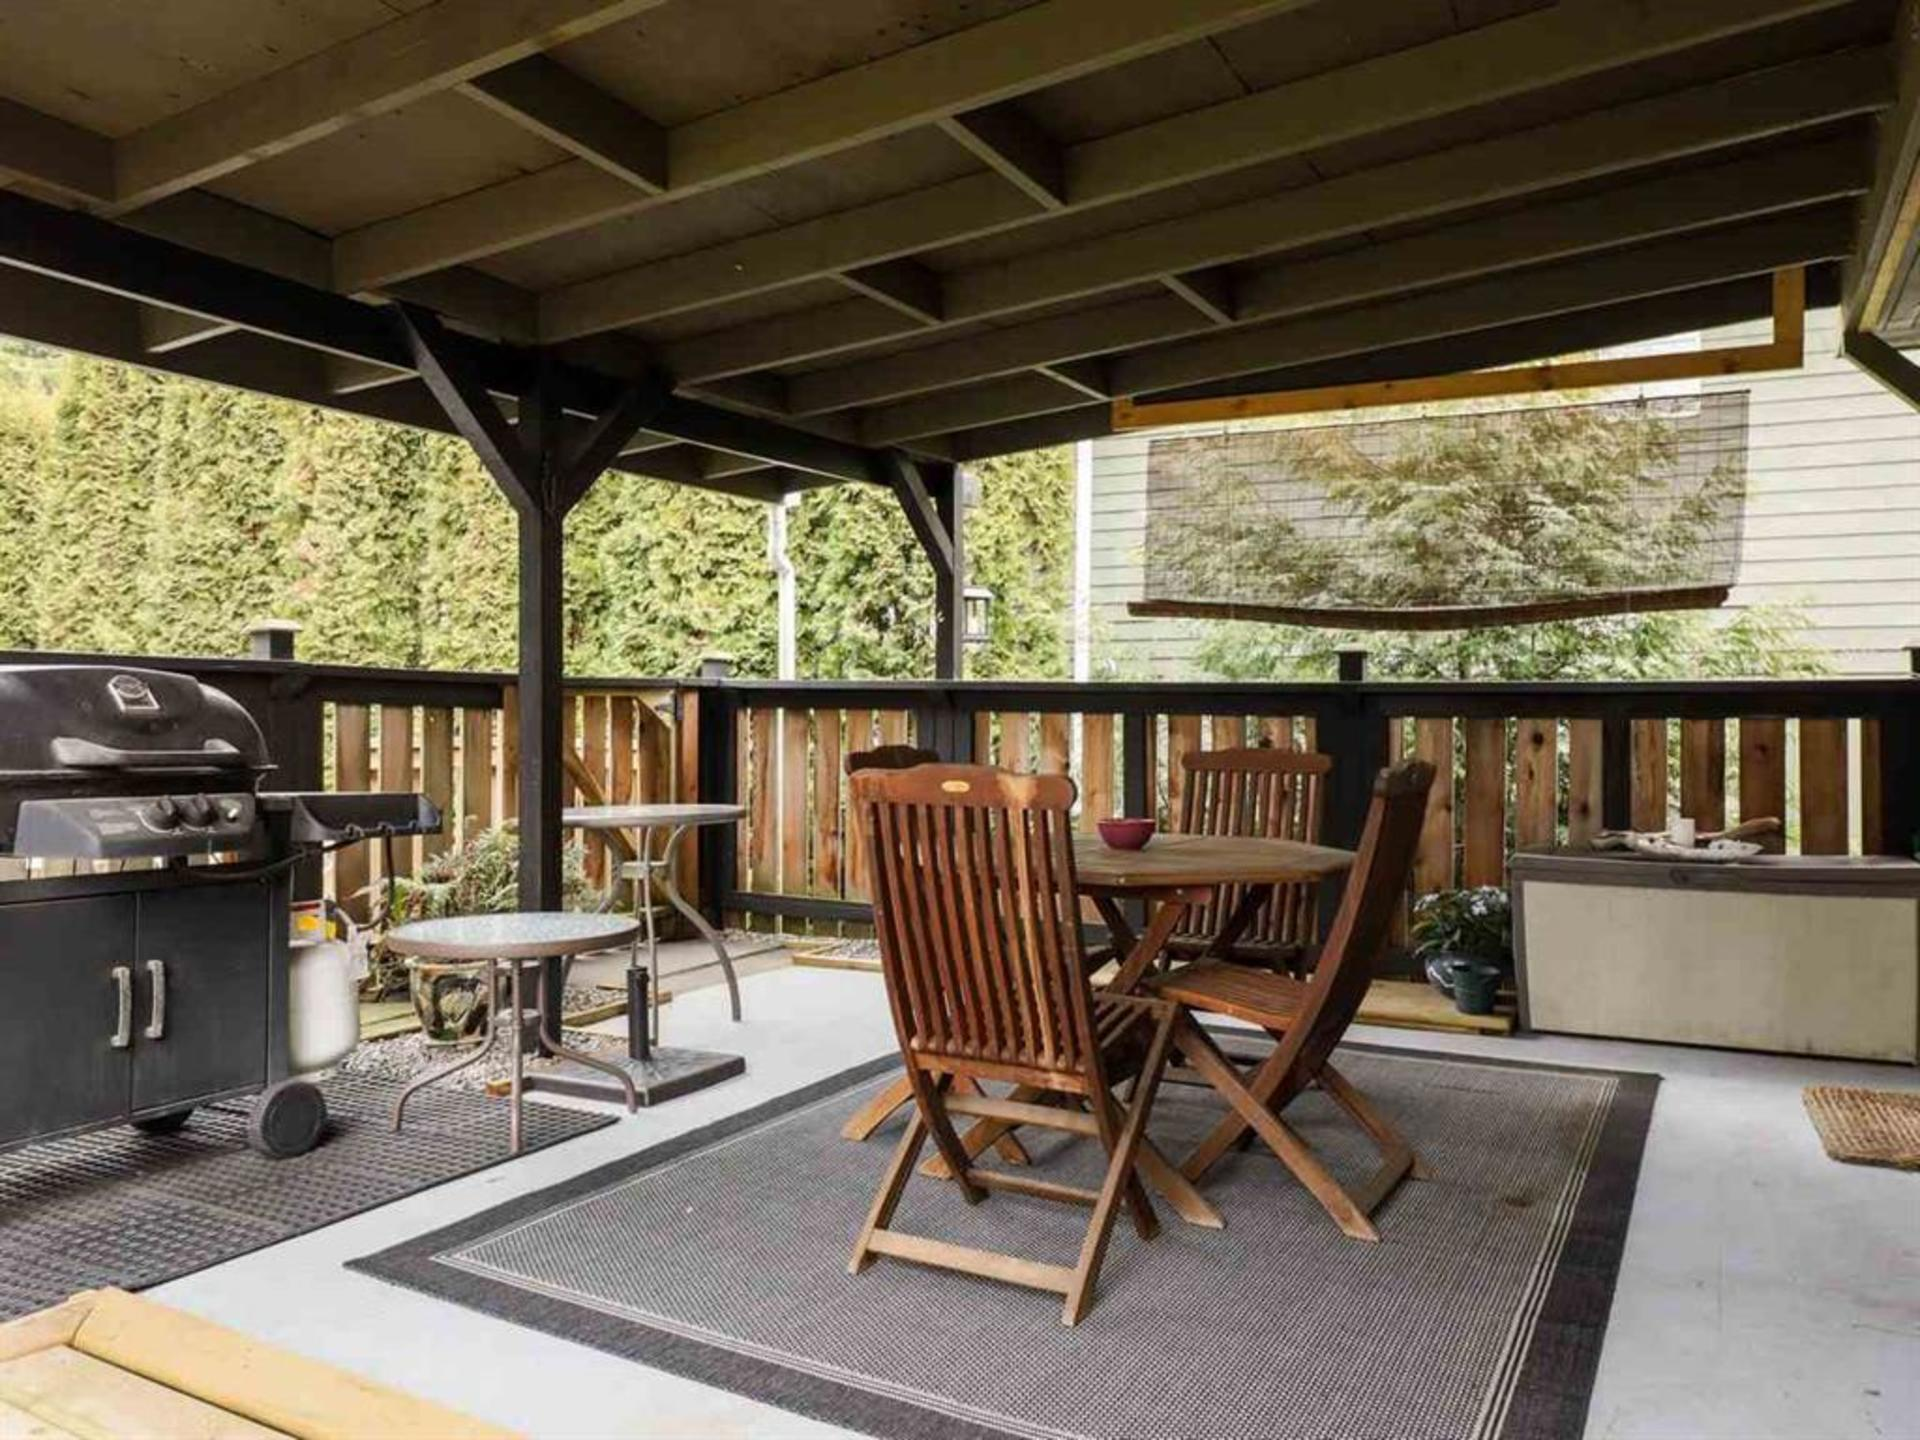 262161026-16 at 514 West 28th Street, Upper Lonsdale, North Vancouver